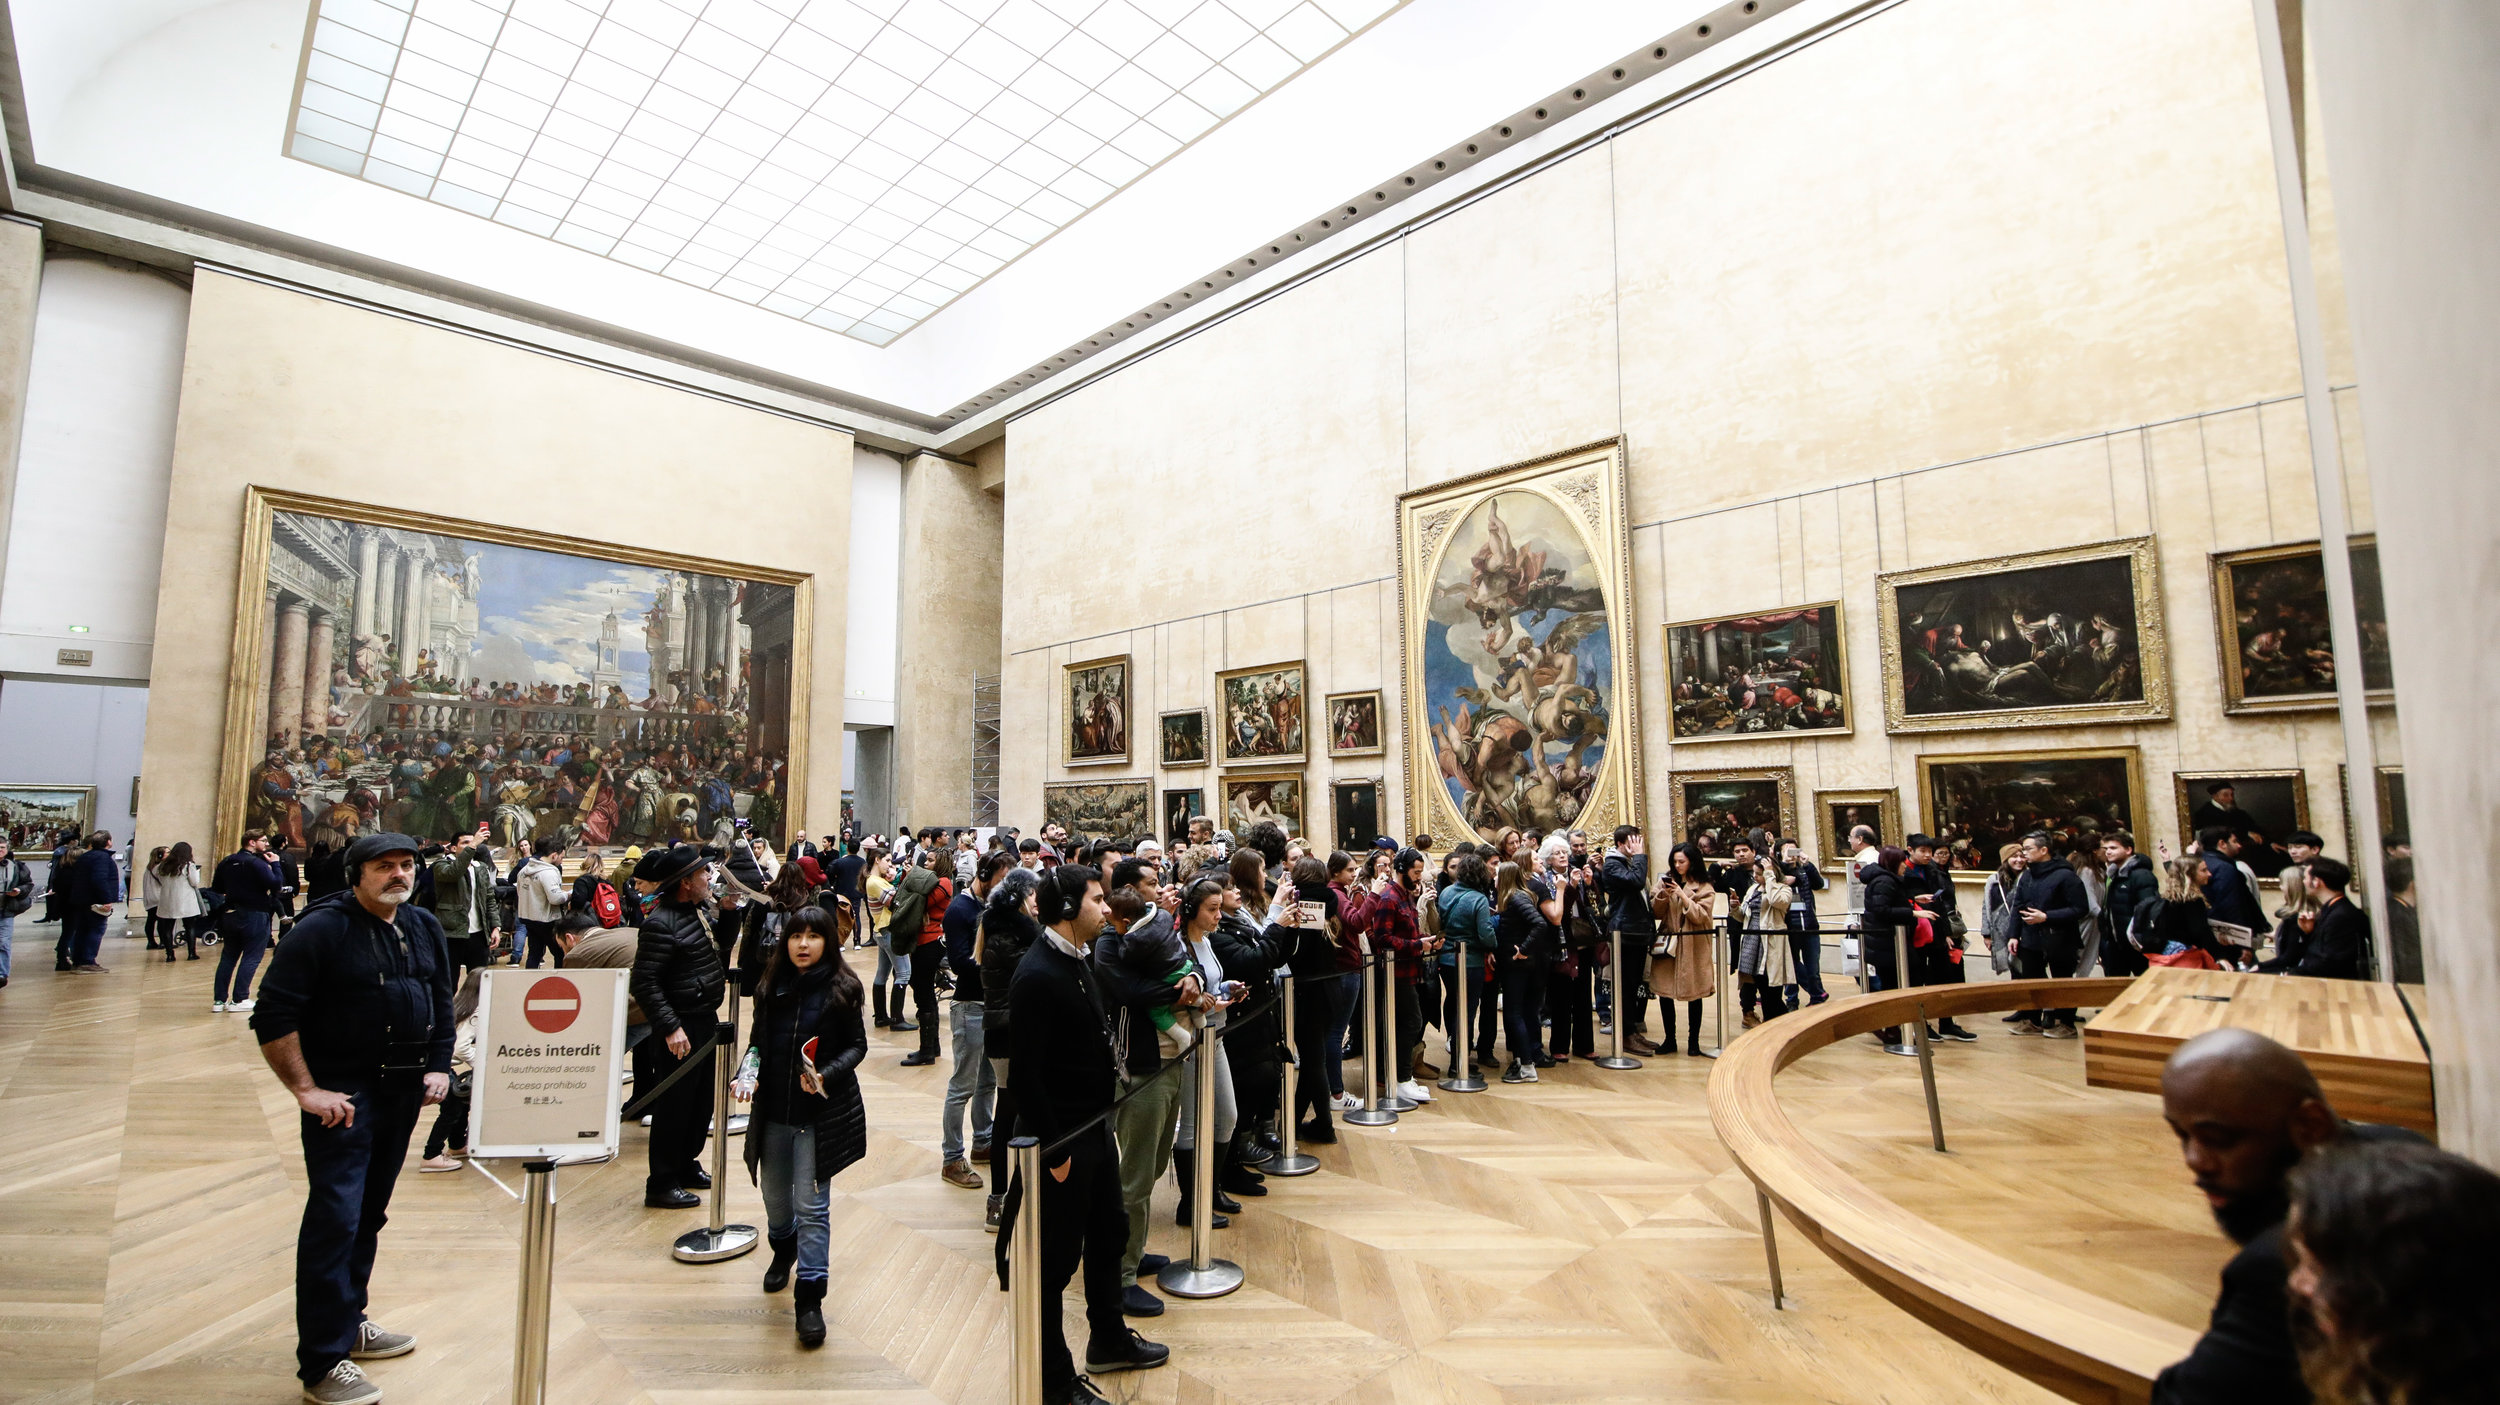 We were so lucky that it wasn't busy in January. Normally, this room is packed full of people trying to view Mona Lisa.